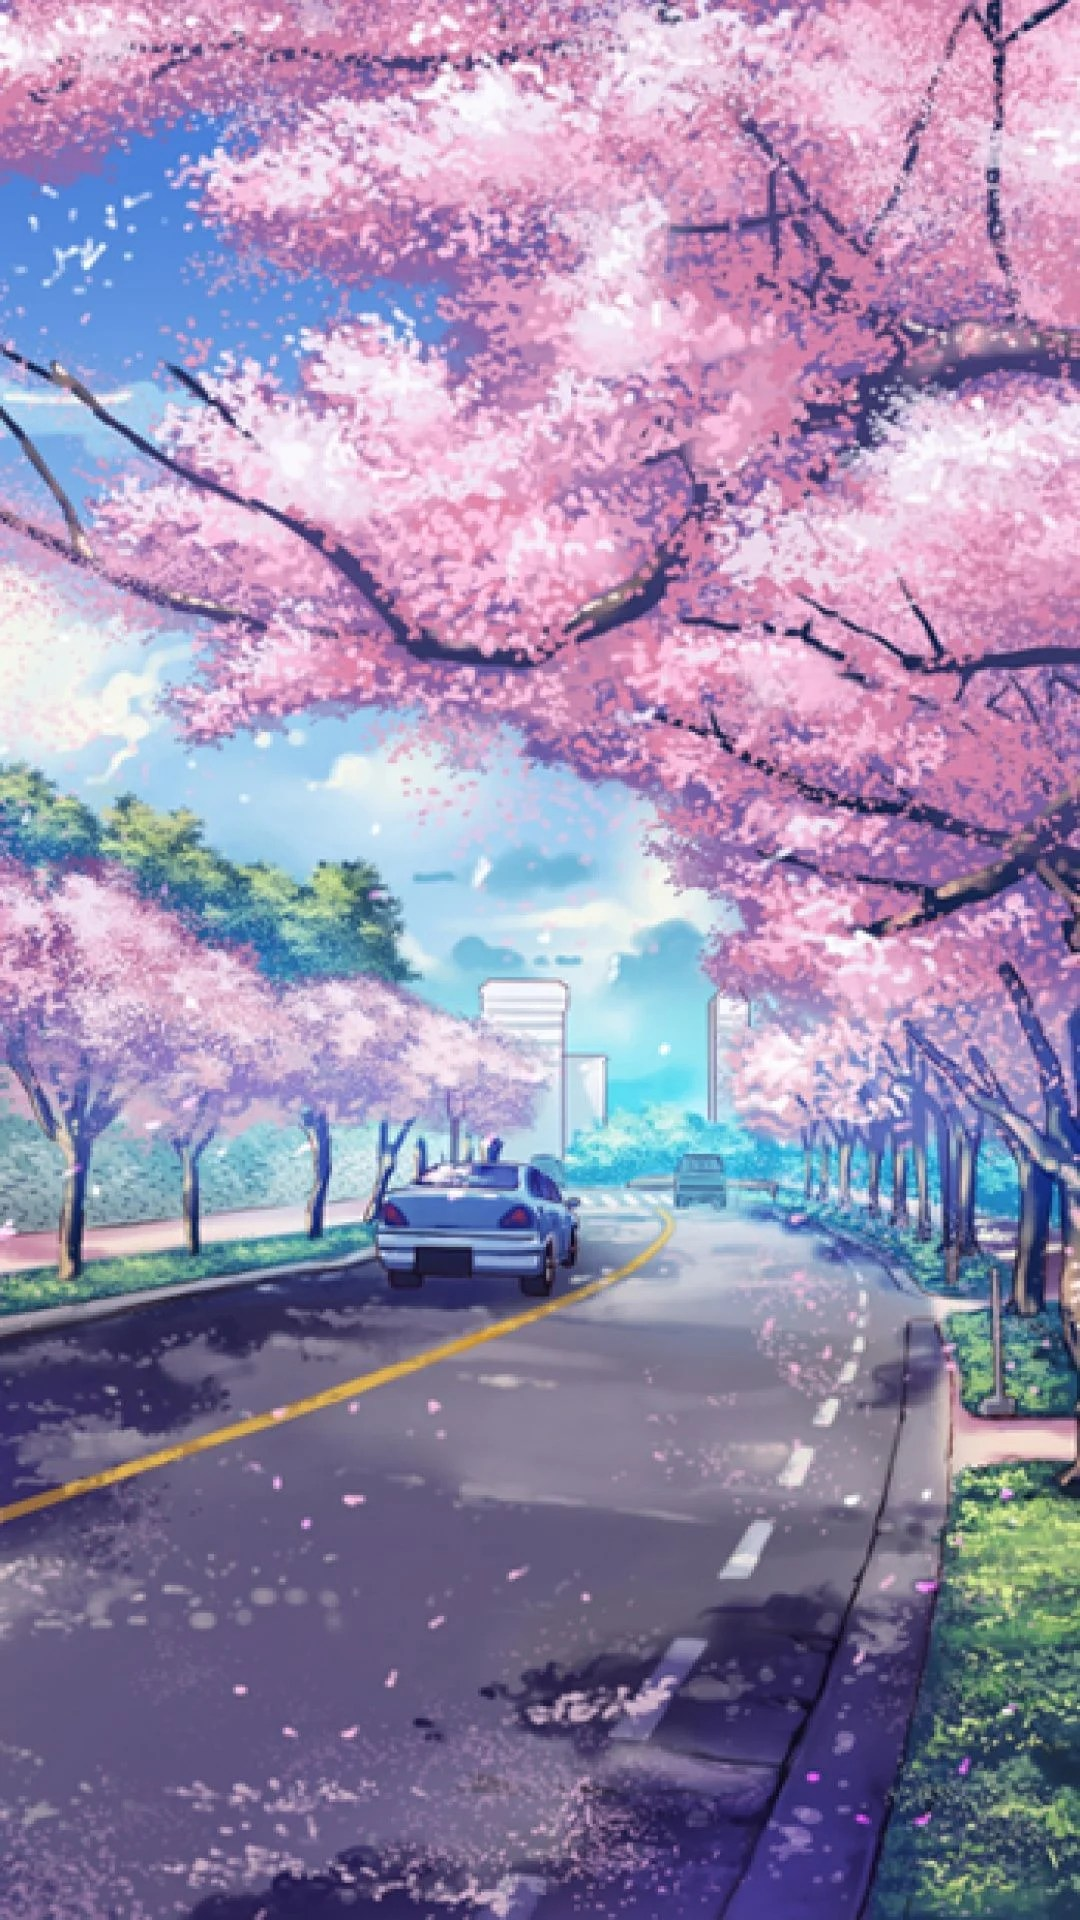 Anime Scenery Iphone Wallpapers Top Free Anime Scenery Iphone Backgrounds Wallpaperaccess